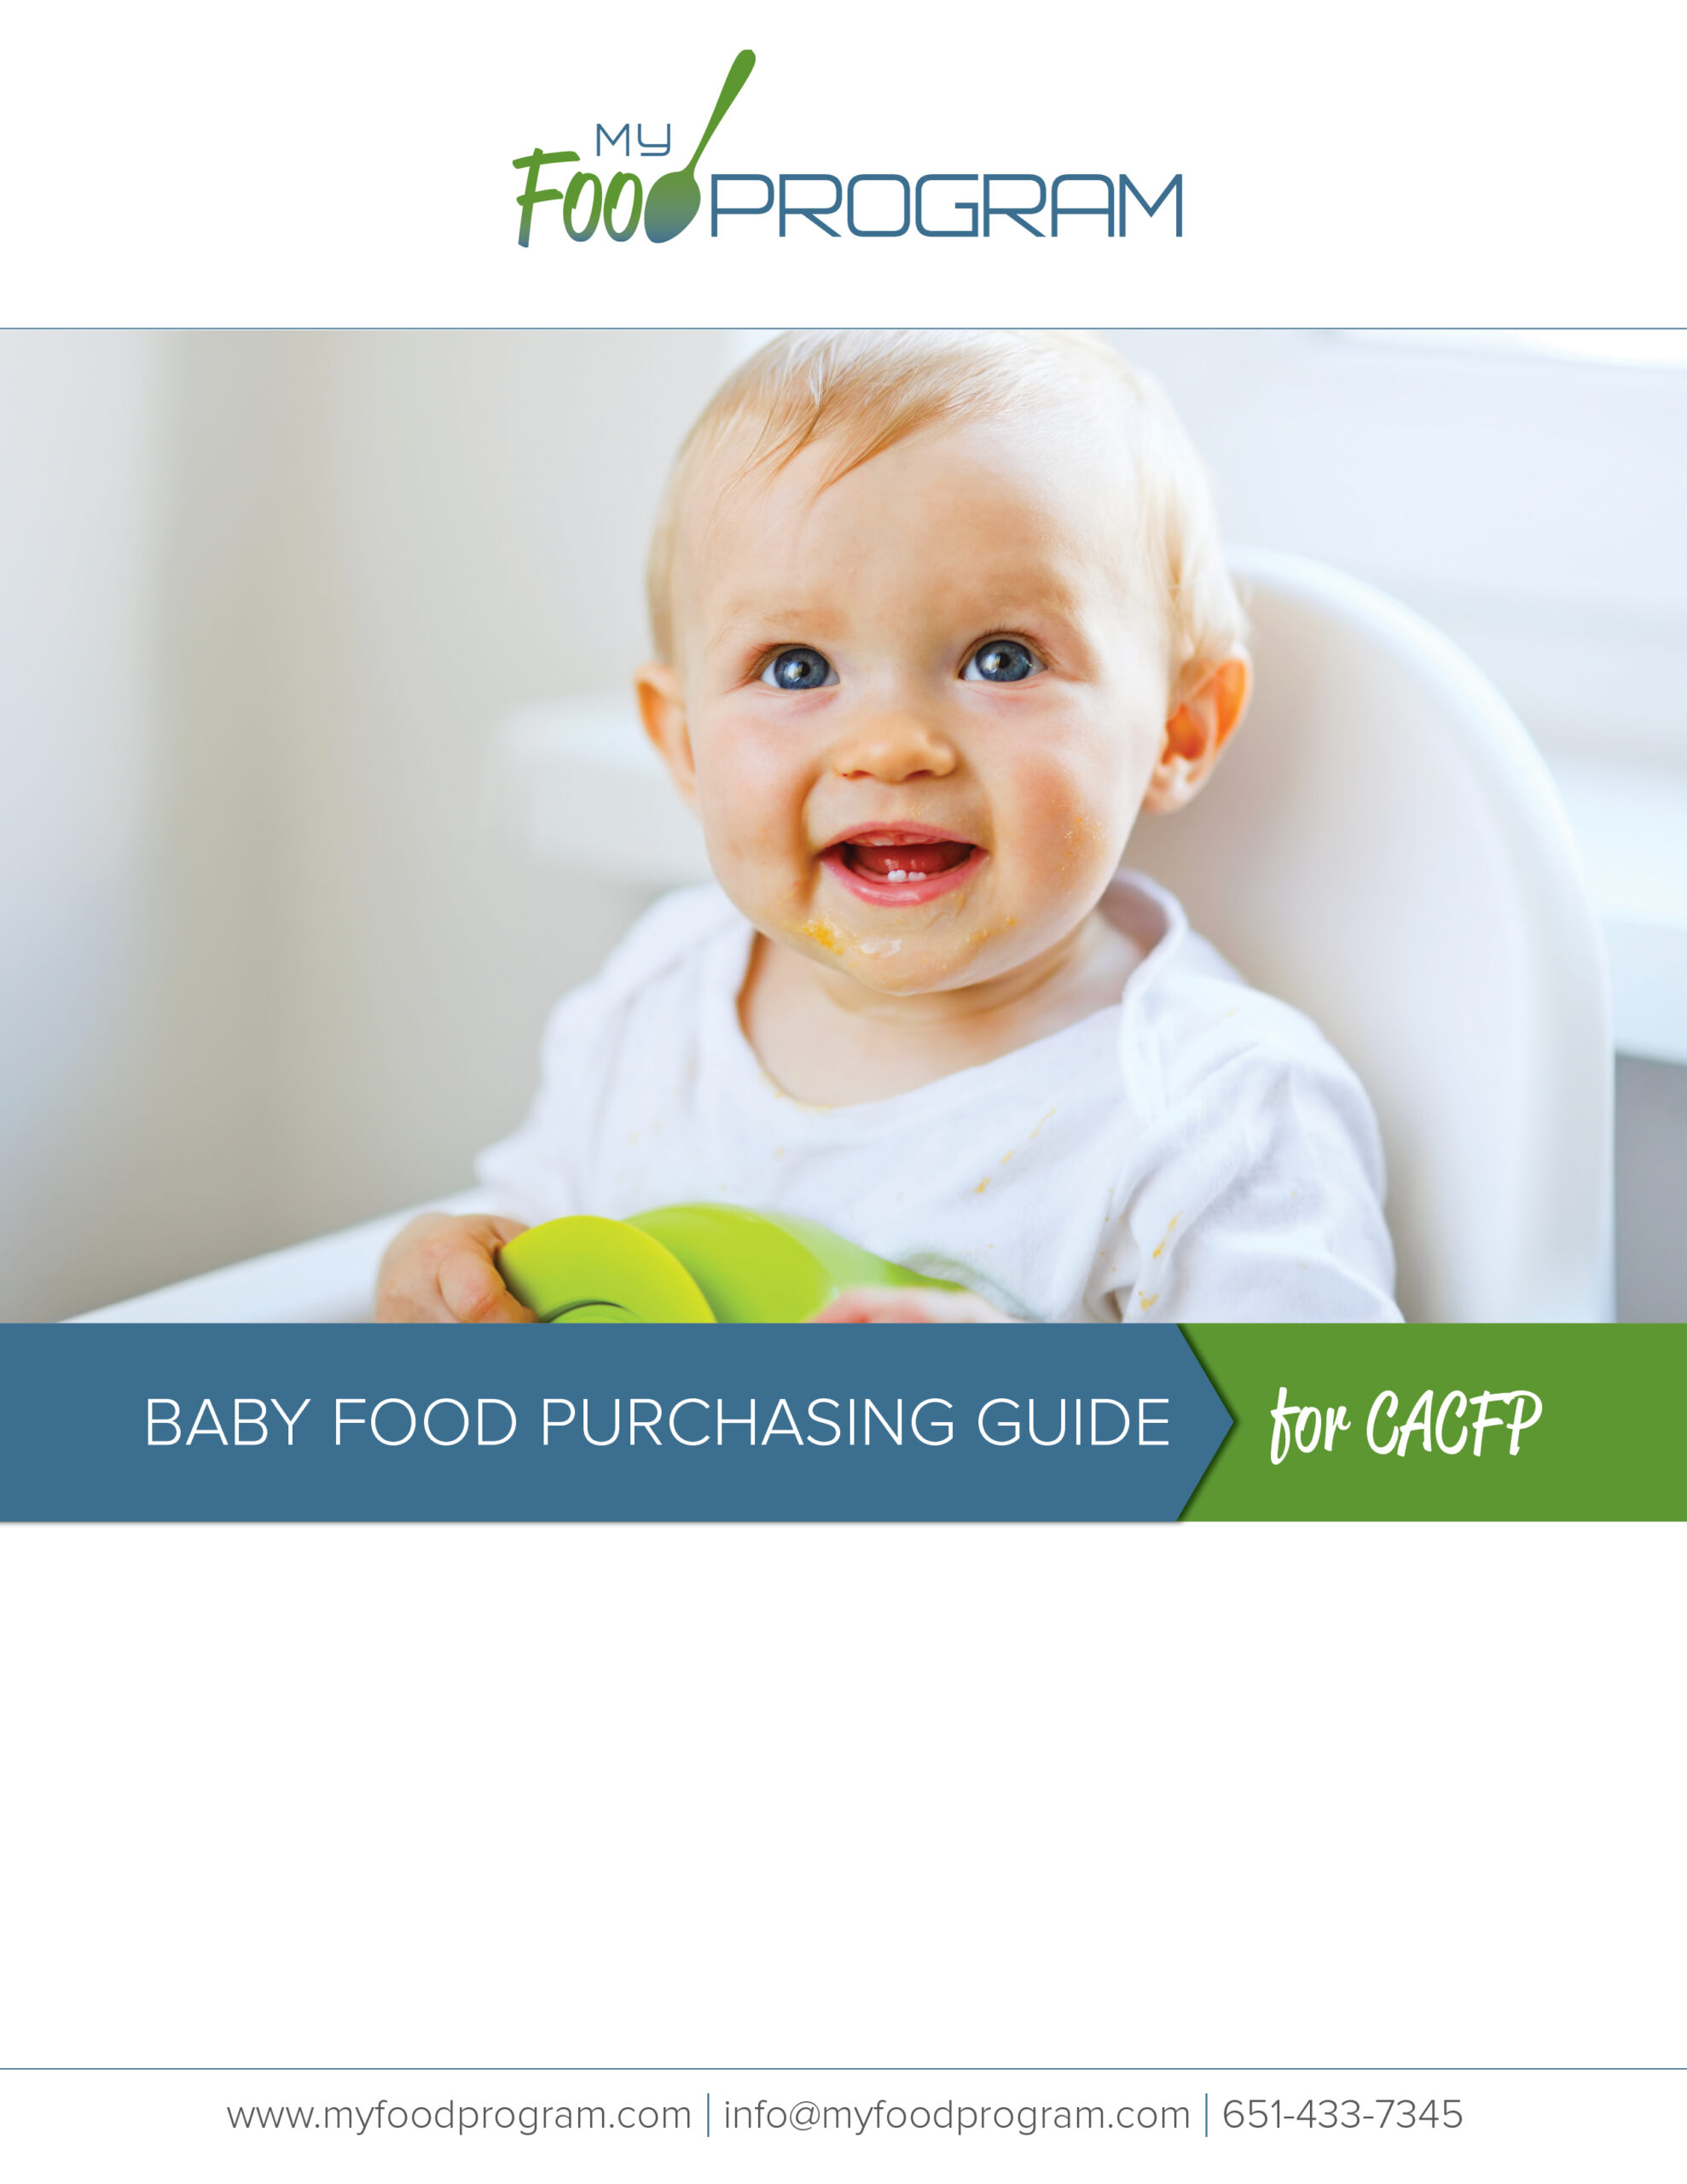 My Food Program Baby Food Purchasing Guide